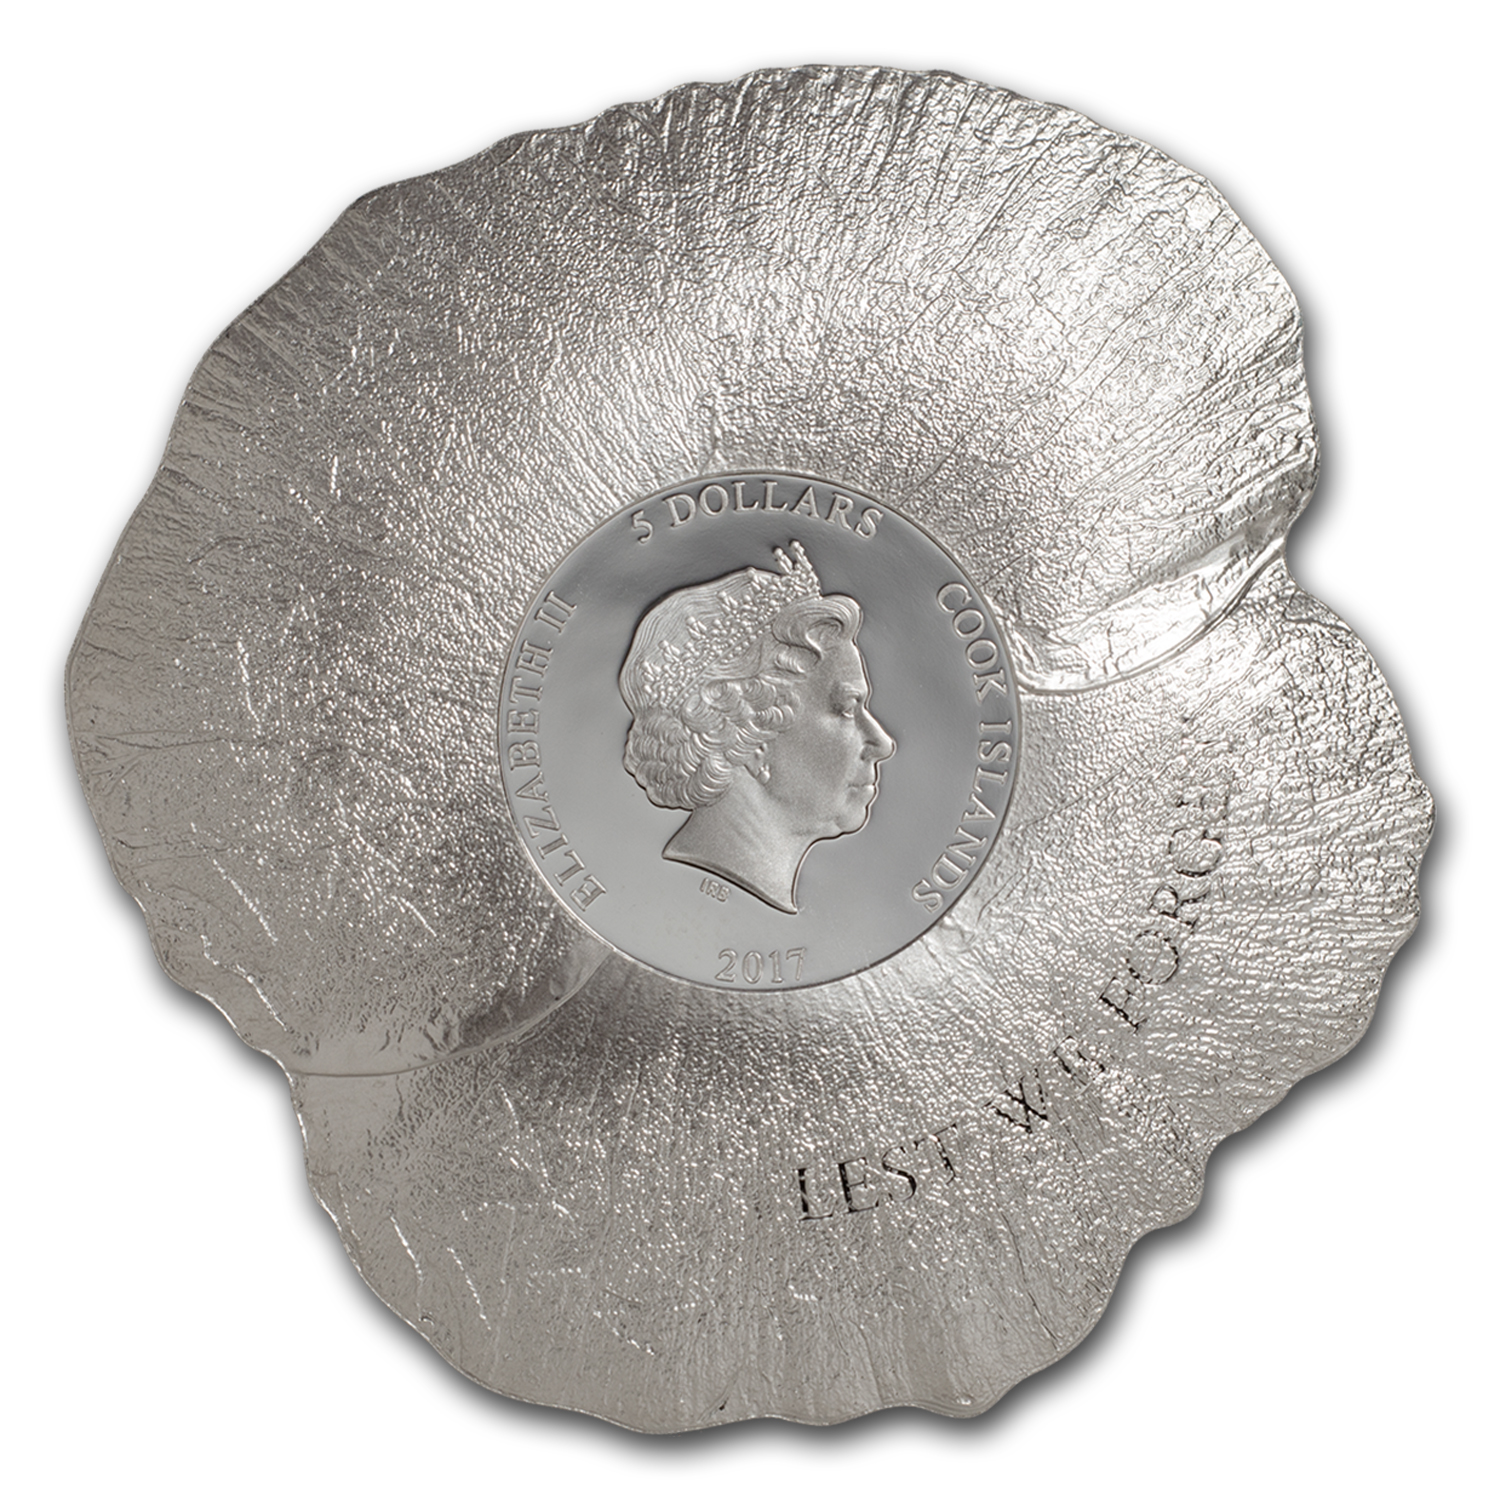 2017 Cook Islands 1 oz Silver $5 Remembrance Poppy Shape Coin